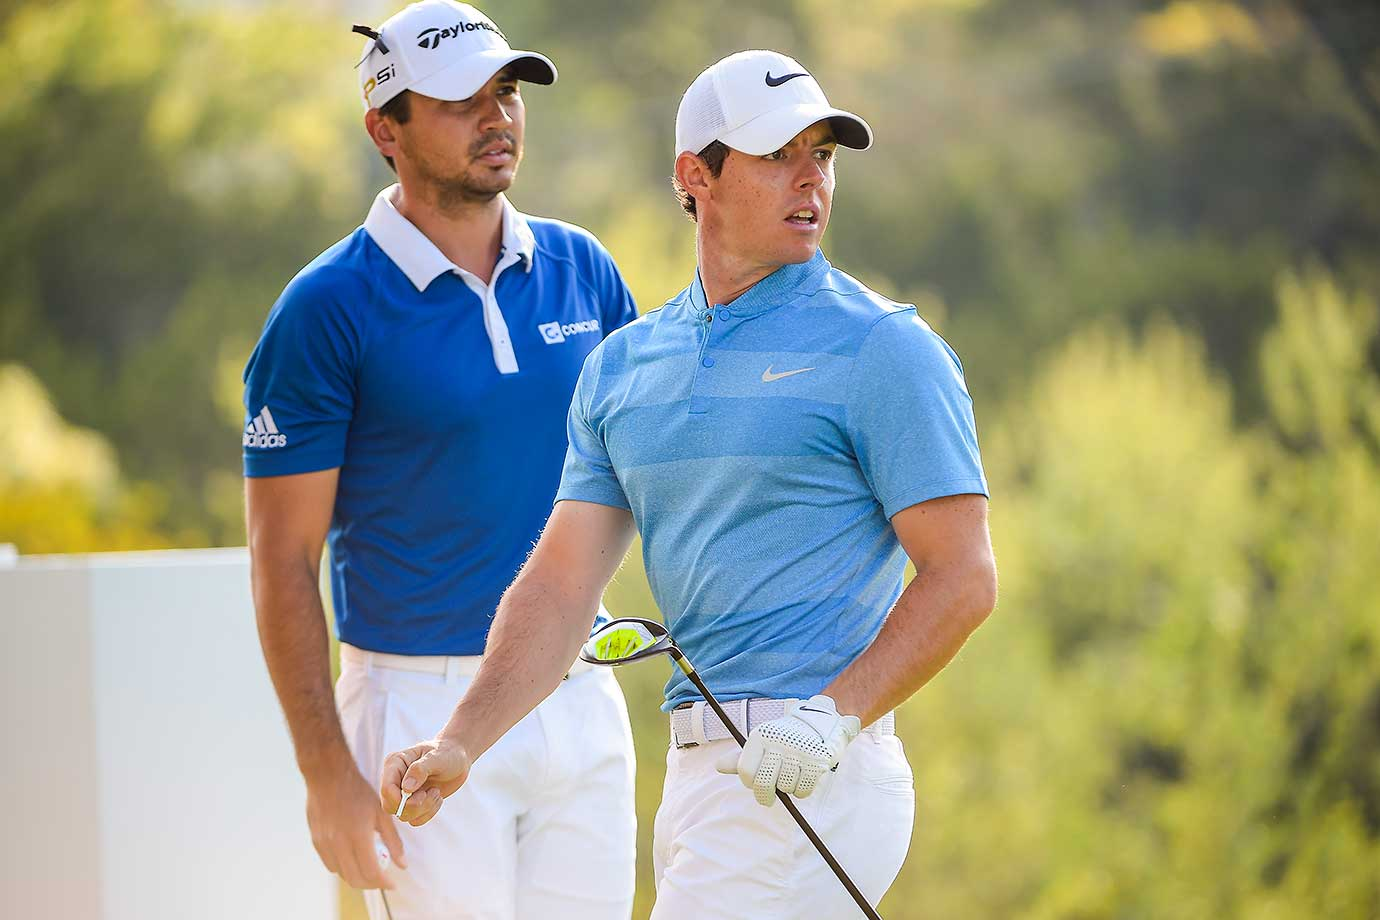 Rory McIlroy and Jason Day during the final round of the World Golf Championships in Austin, Texas, which Day ended up winning.